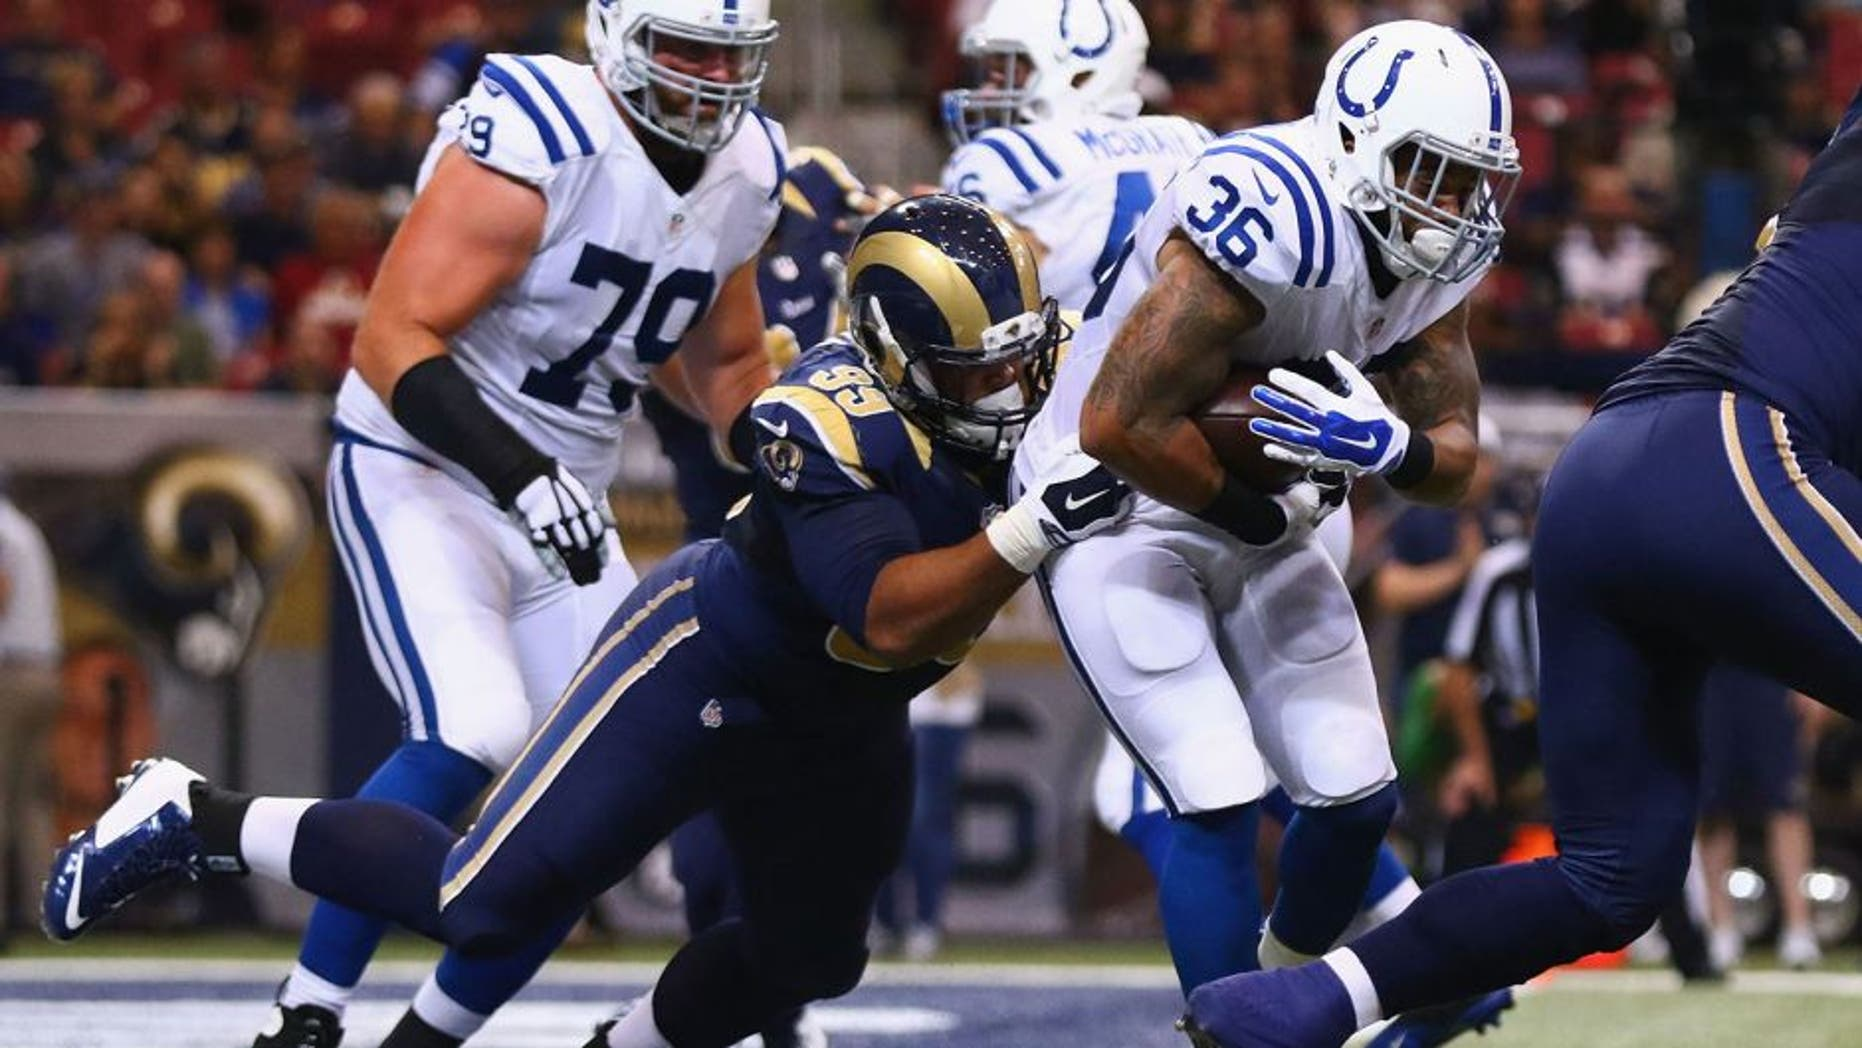 ST. LOUIS, MO - AUGUST 29: Aaron Donald #99 of the St. Louis Rams tackles Daniel Herron #36 of the Indianapolis Colts in the second quarter during a preseason game at the Edward Jones Dome on August 29, 2014 in St. Louis, Missouri. (Photo by Dilip Vishwanat/Getty Images)